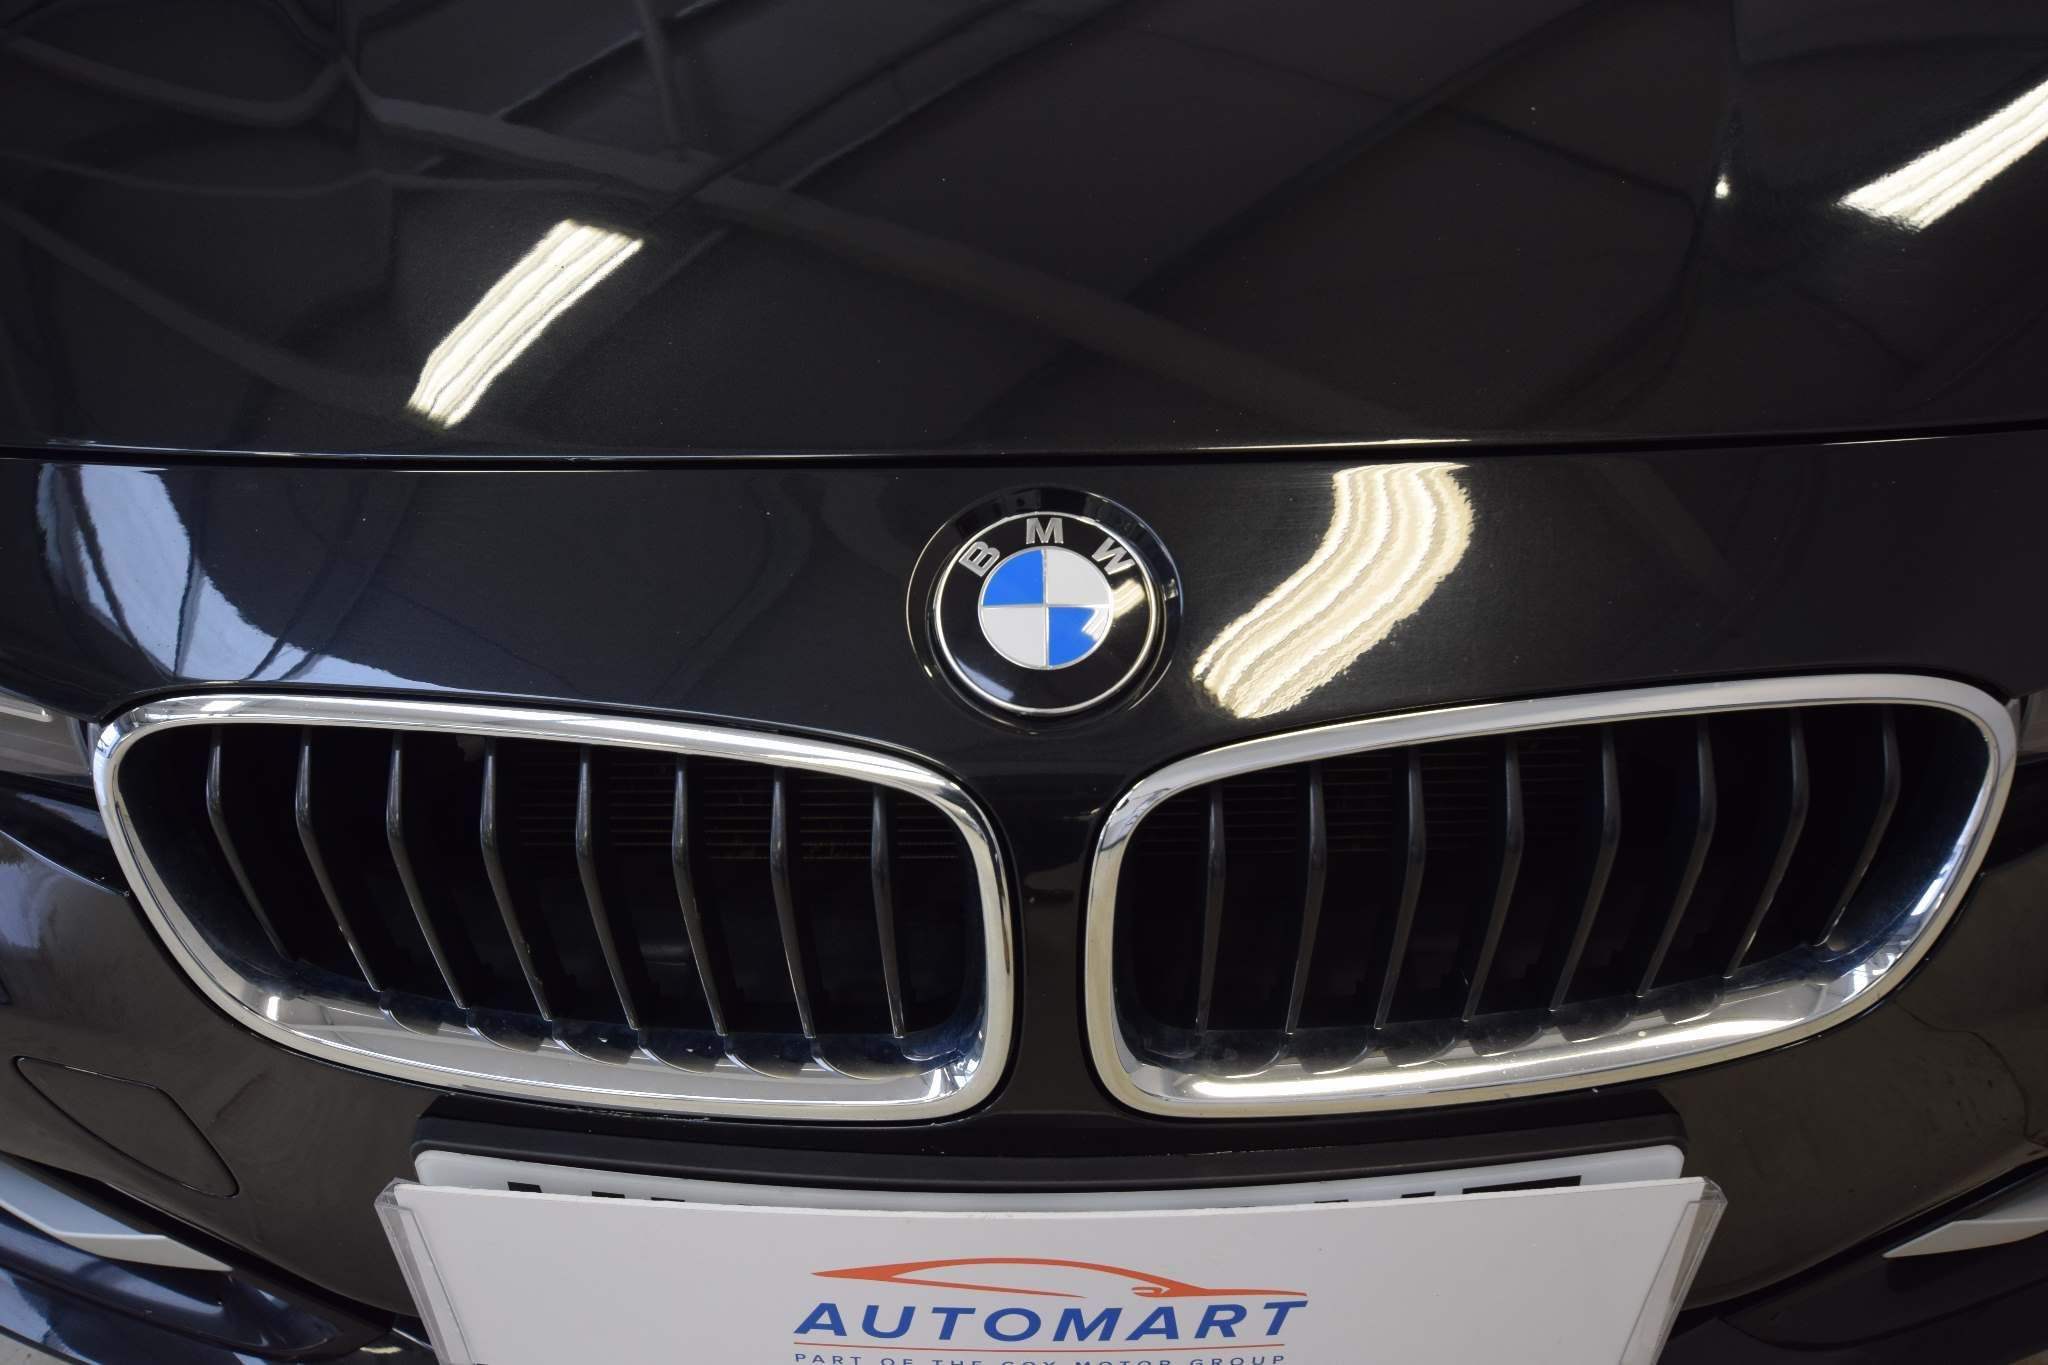 BMW 3 Series Images